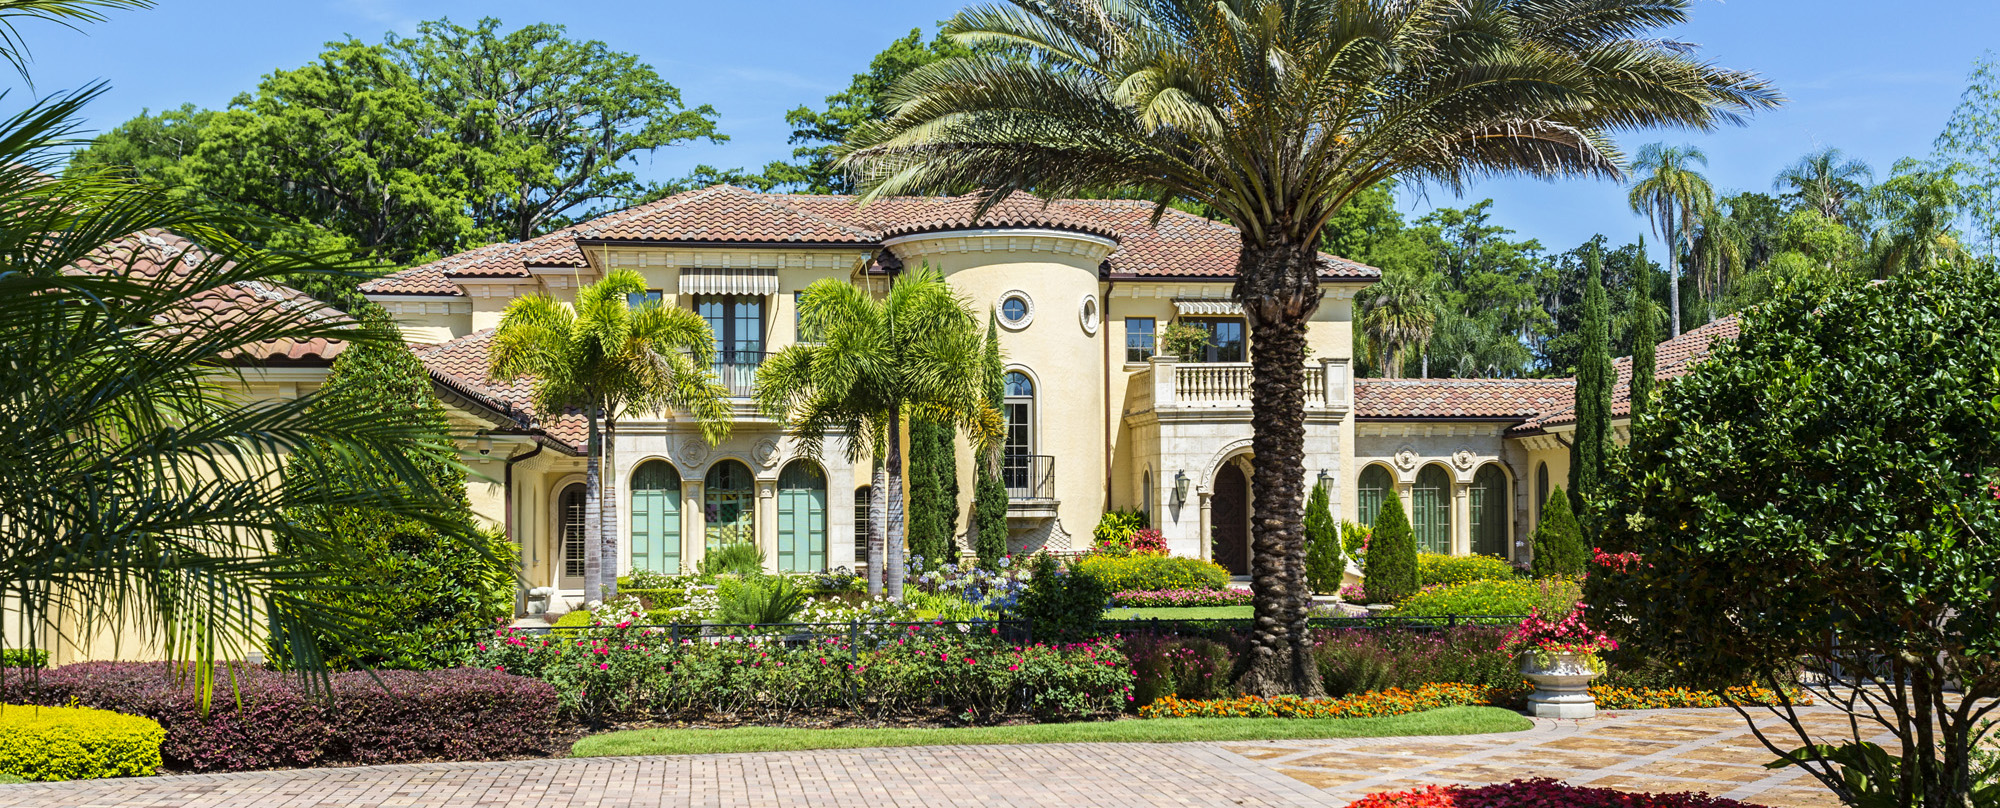 Quality Landscaping Companies in West Palm Beach